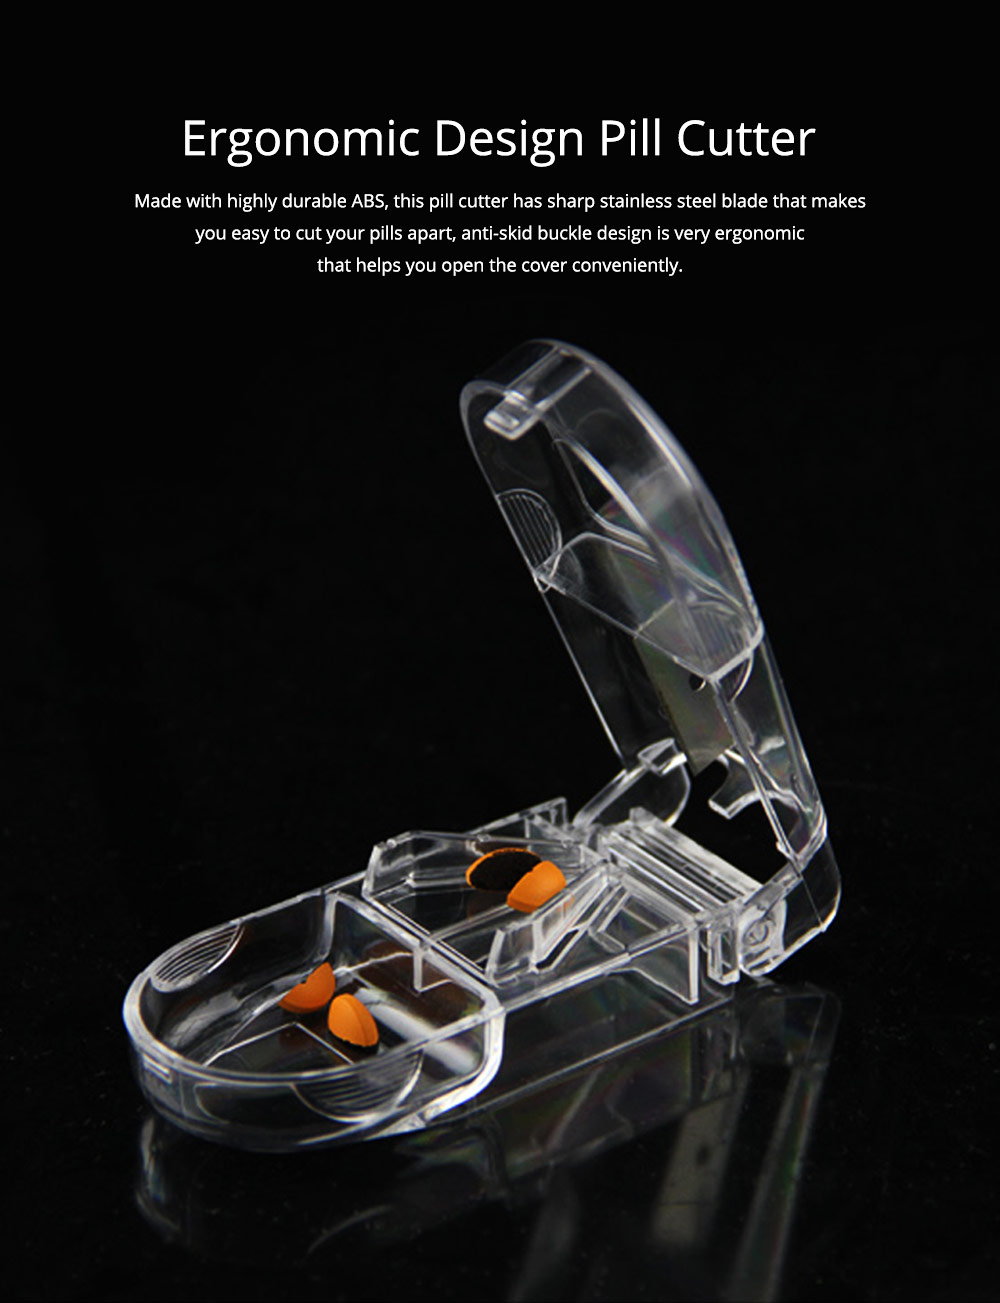 Pill Cutter with Ergonomic Design Transparent Pill Splitter with Stainless Steel for Accurate Cutting 0